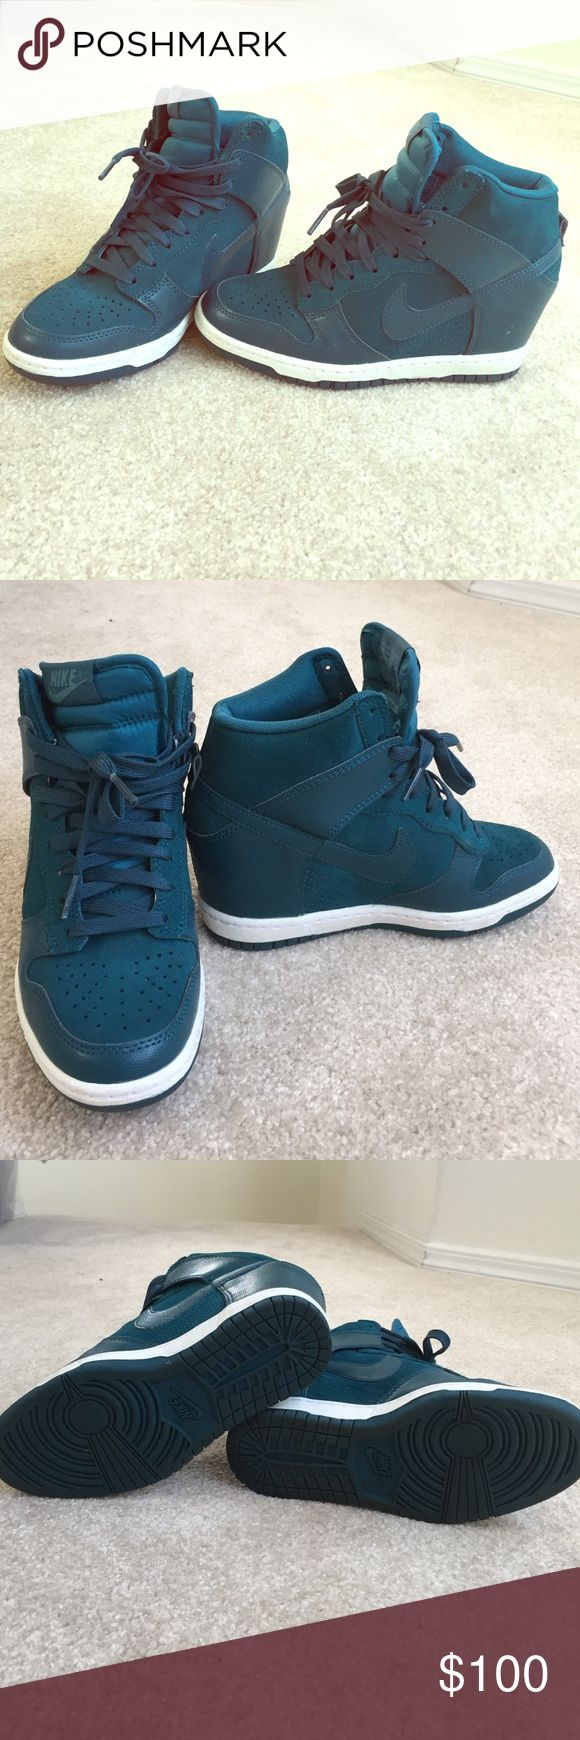 25 best ideas about nike wedge sneakers on